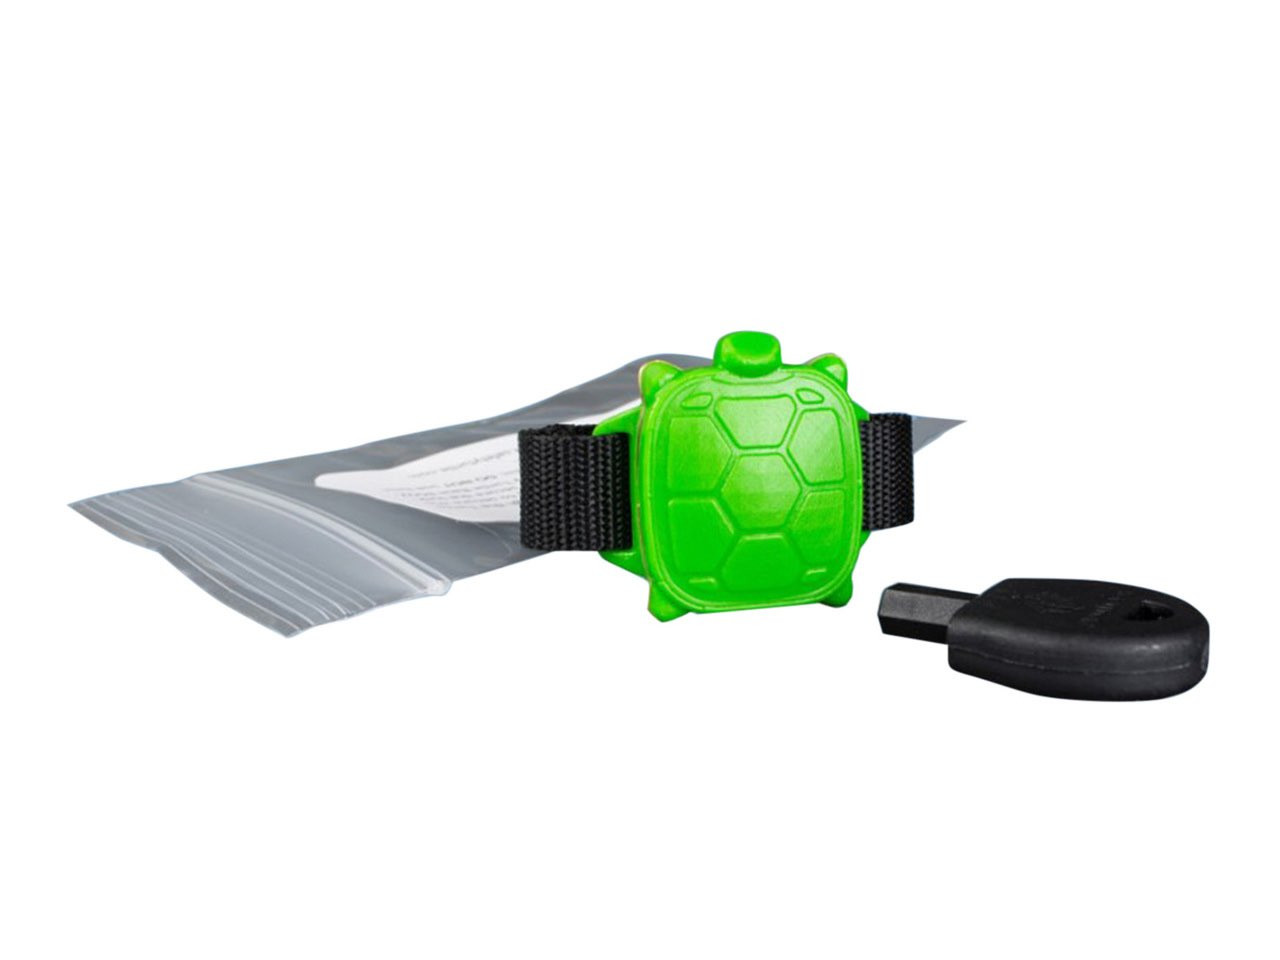 Additional Wristband for Safety Turtle Childs Pool Alarm